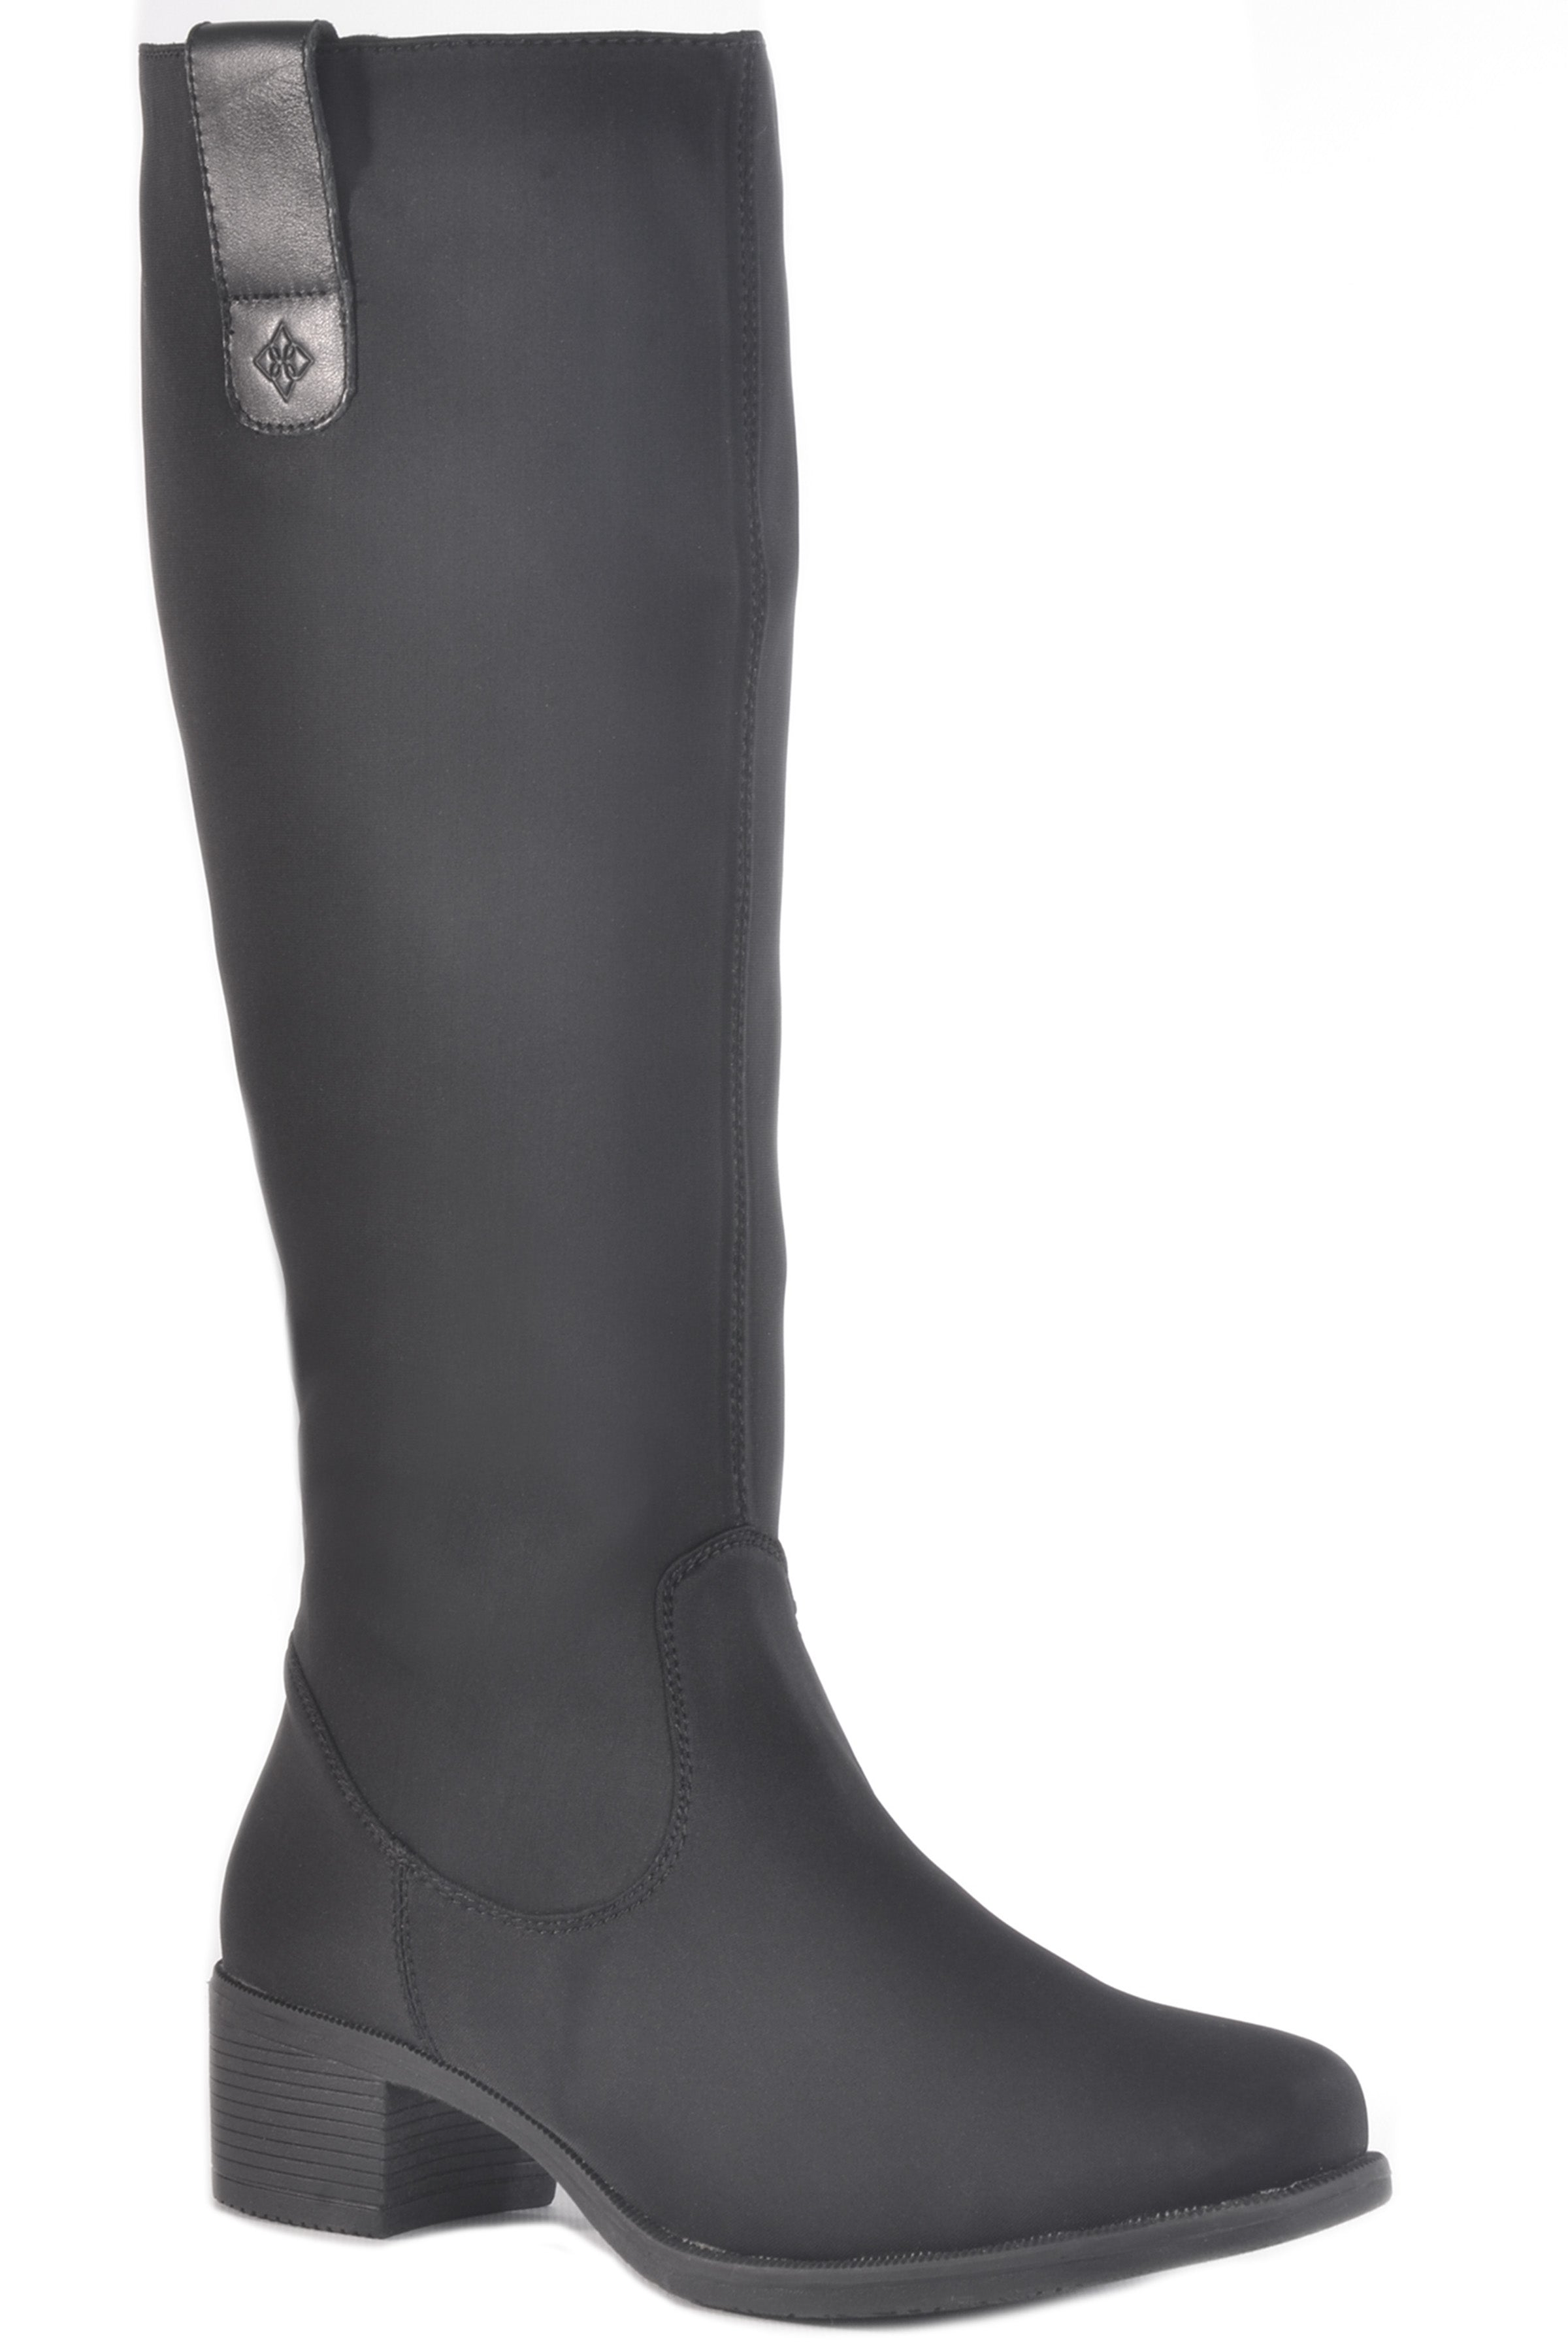 dav waterproof rain boot tall breathable rainboot